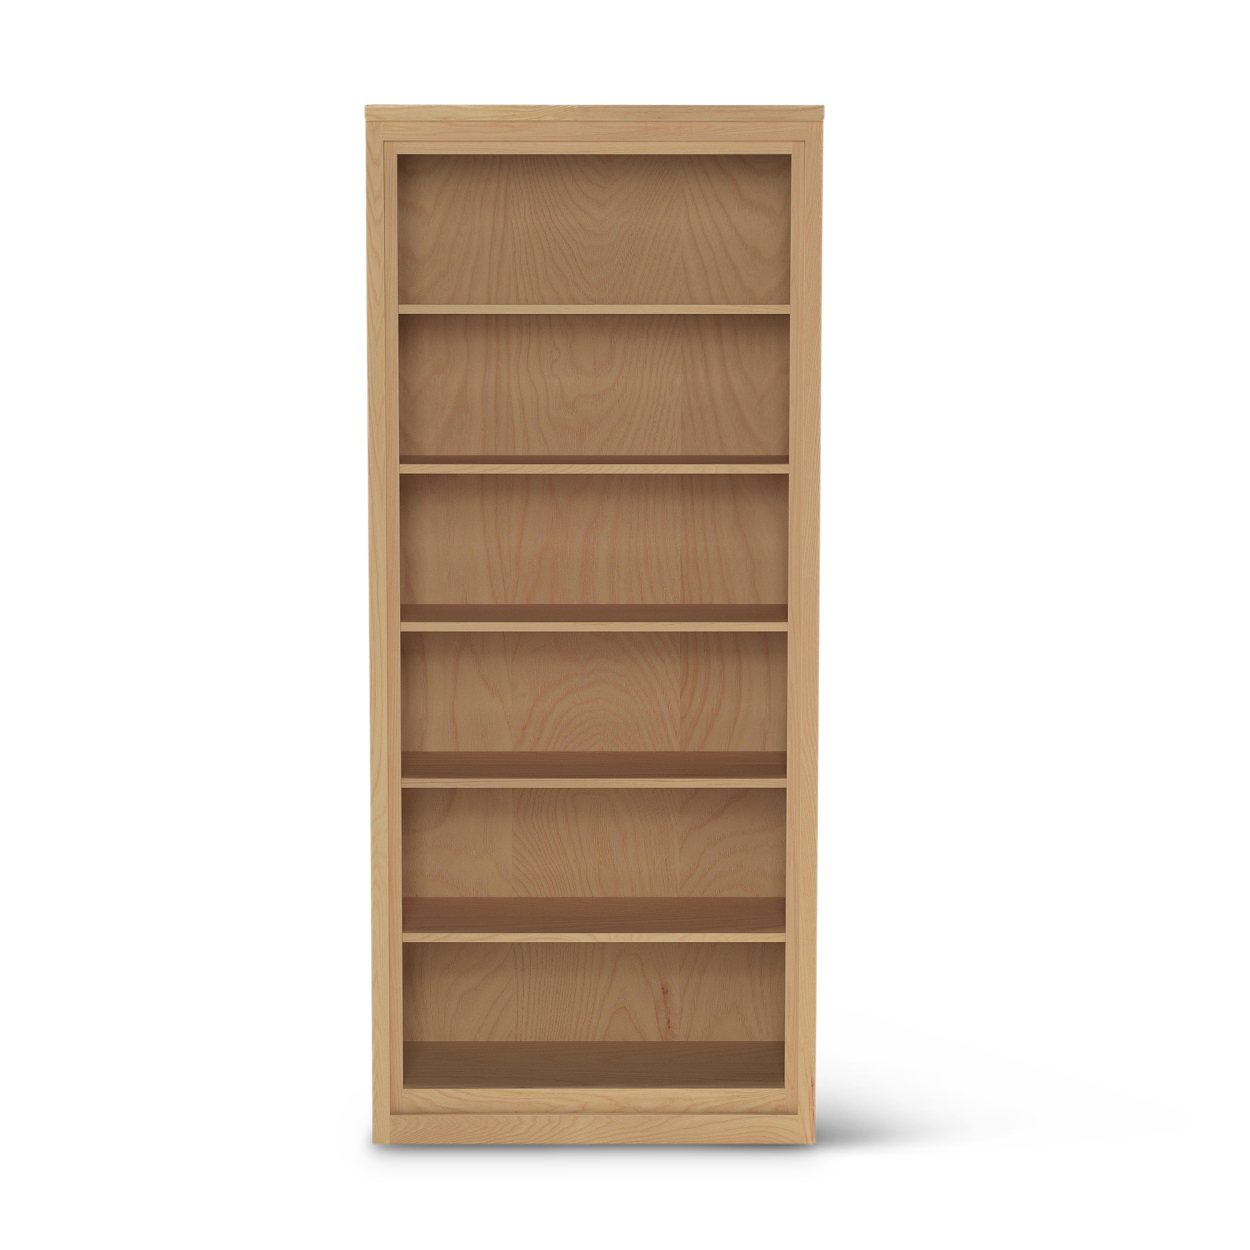 "82"" tall Framed_44 ash wood contemporary Danish bookshelf"